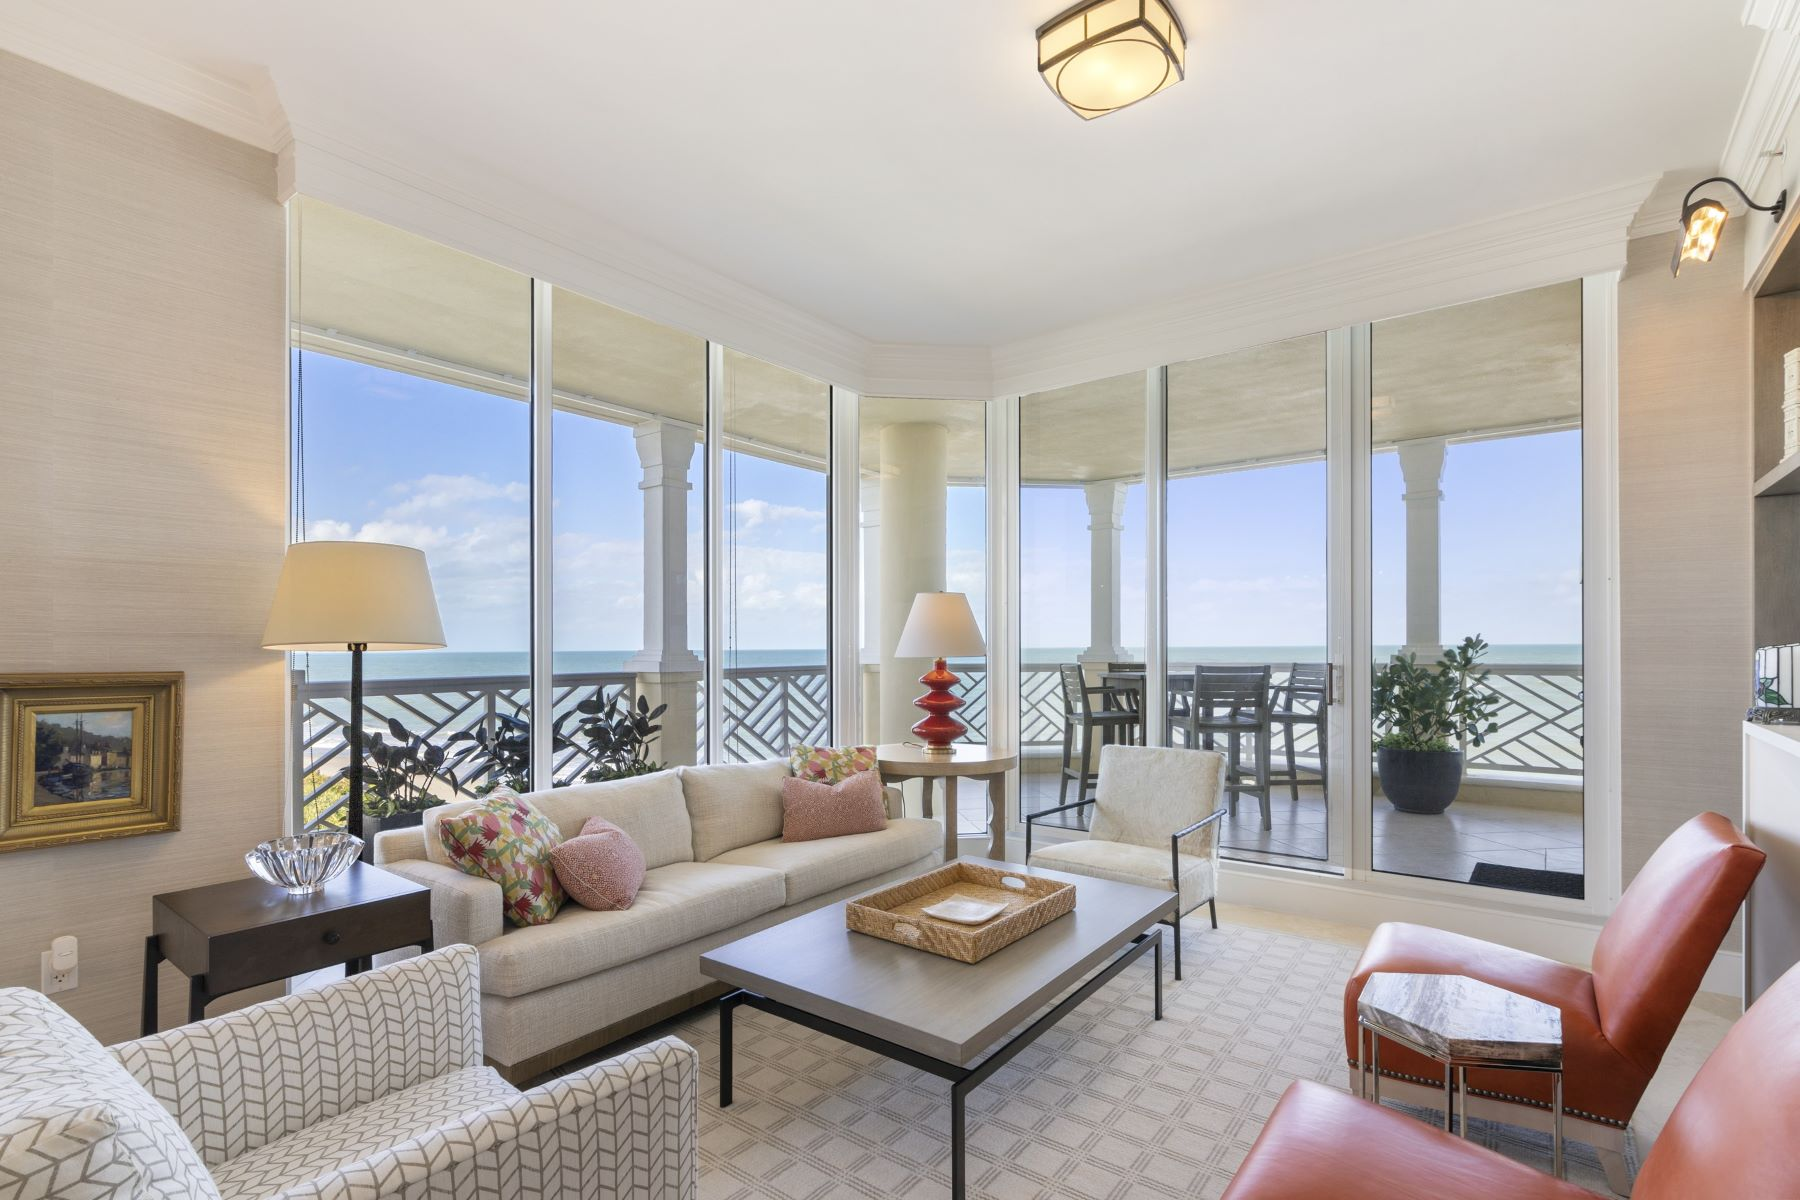 Property for Sale at Spectacular Oceanfront Penthouse 200 E Sea Colony Drive PH-D Indian River Shores, Florida 32963 United States